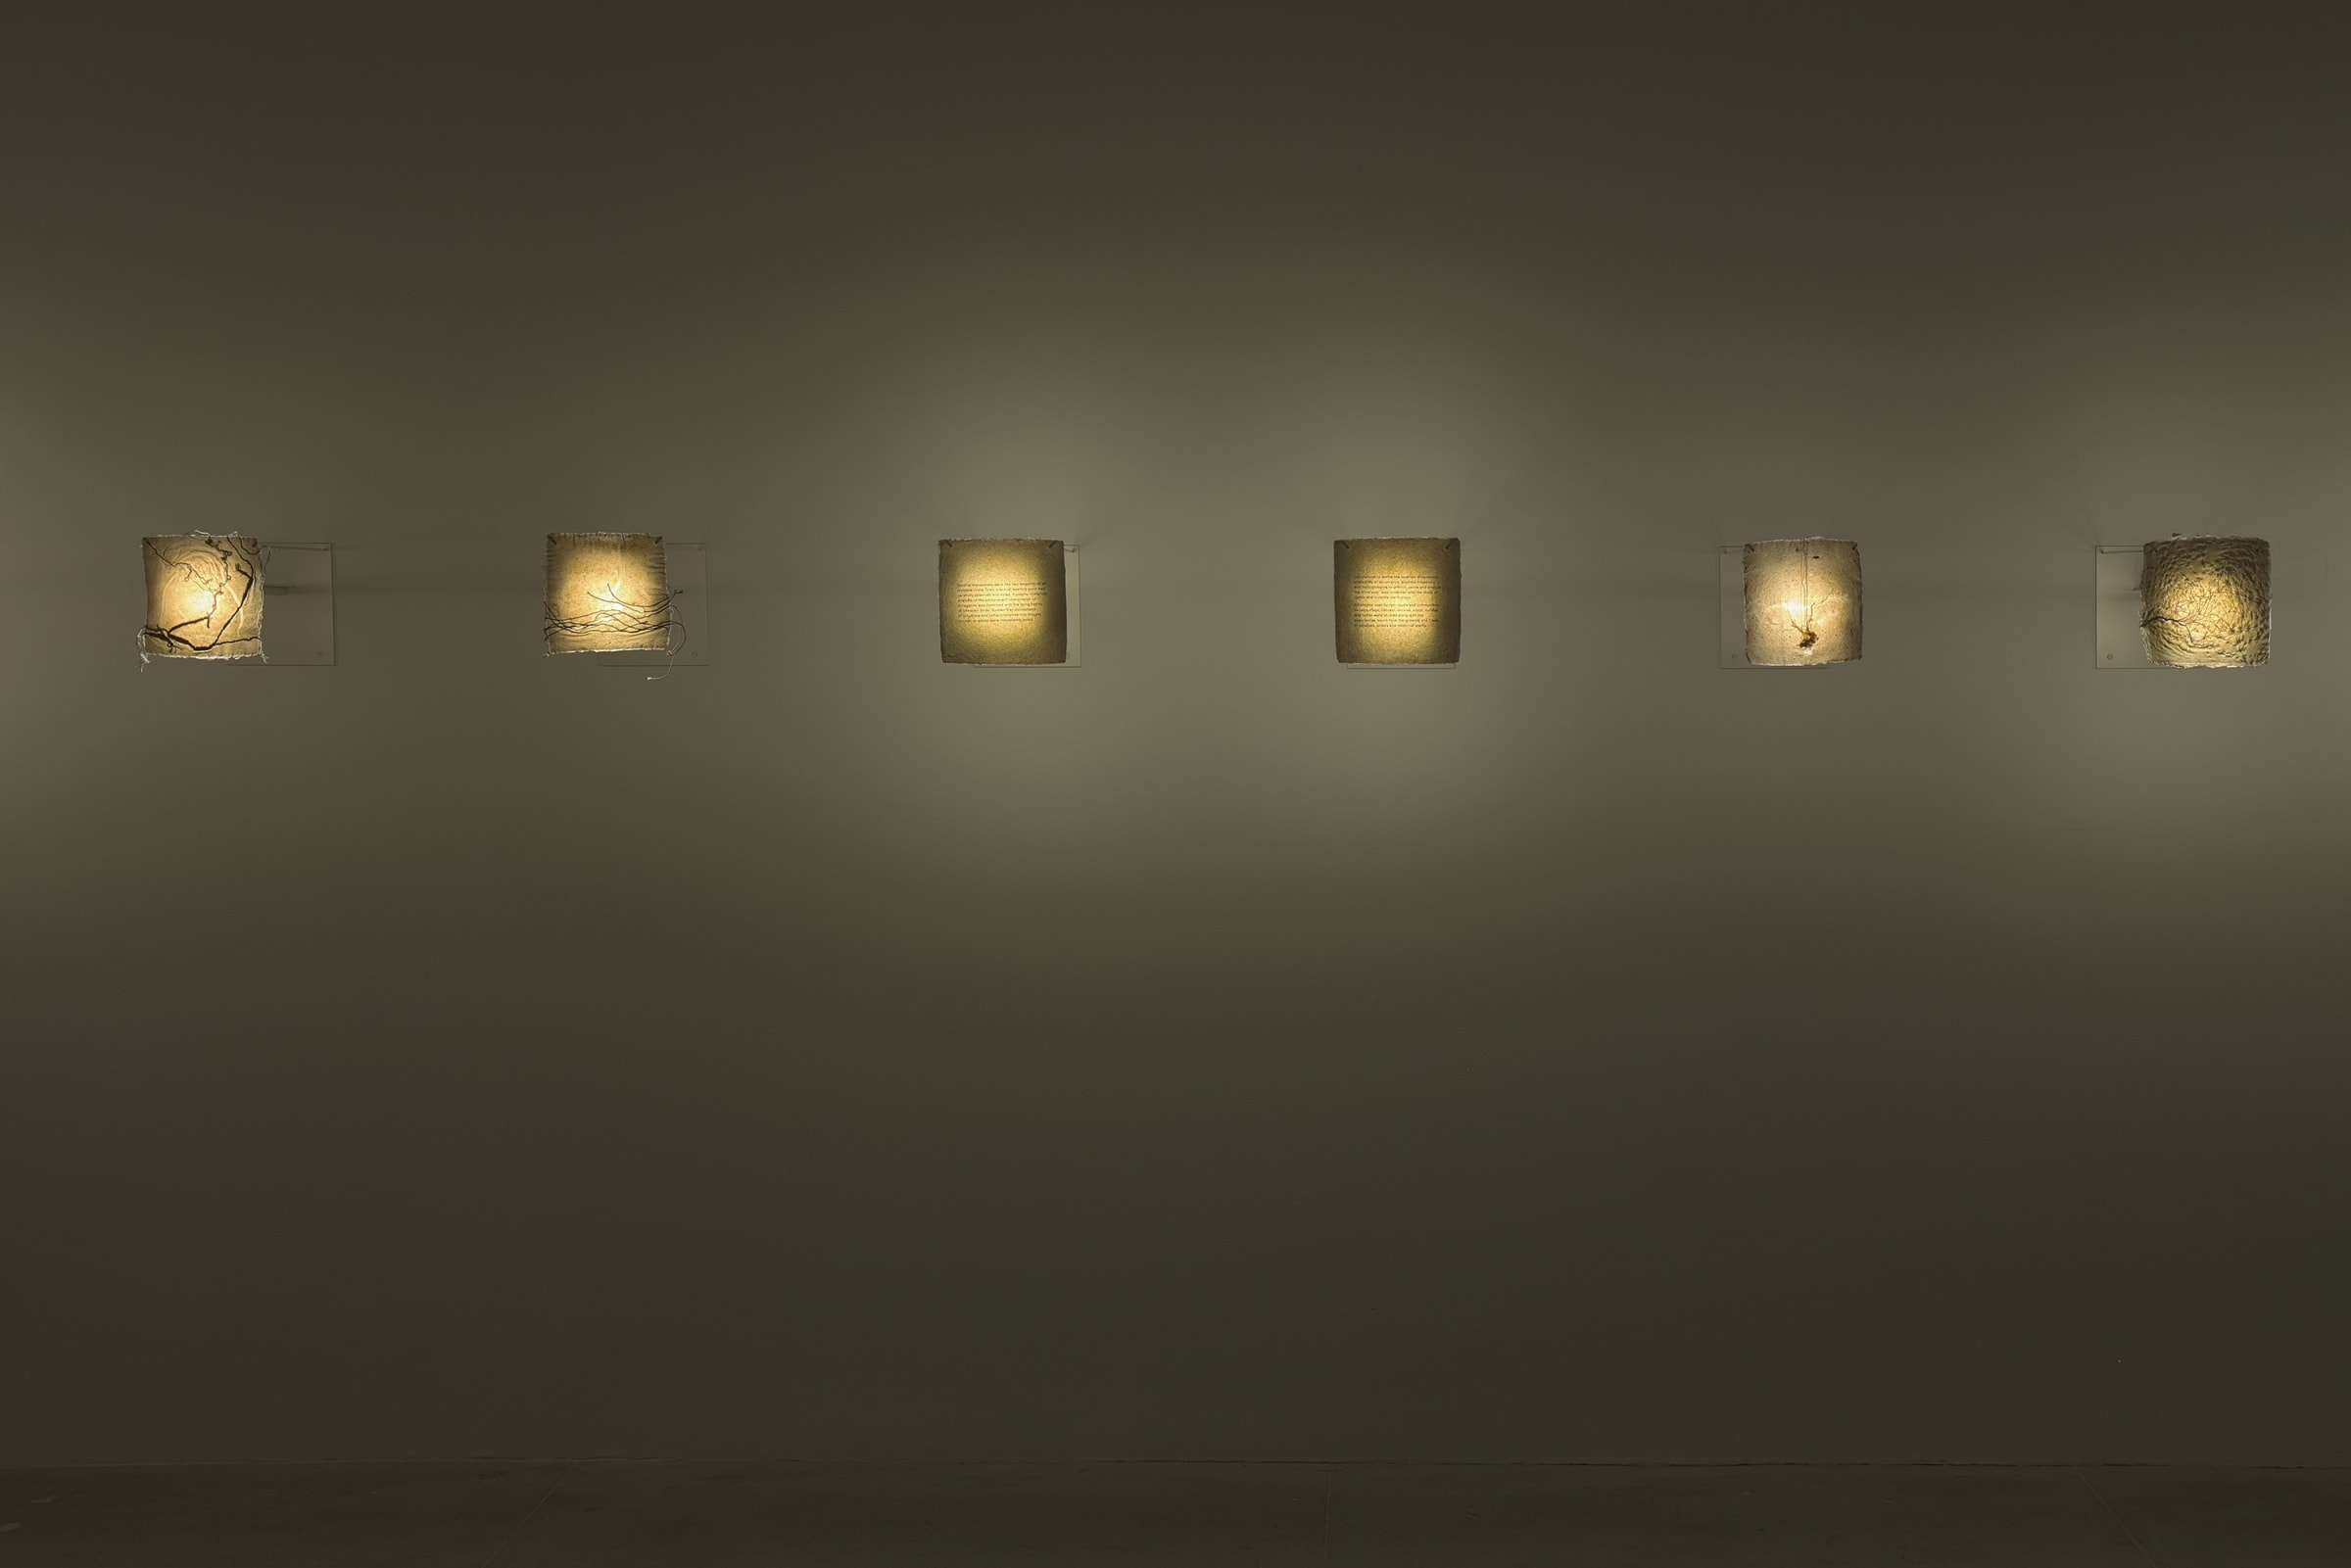 Six small projectors behind various fabrics and papers warmly illuminate a dimly lit room.